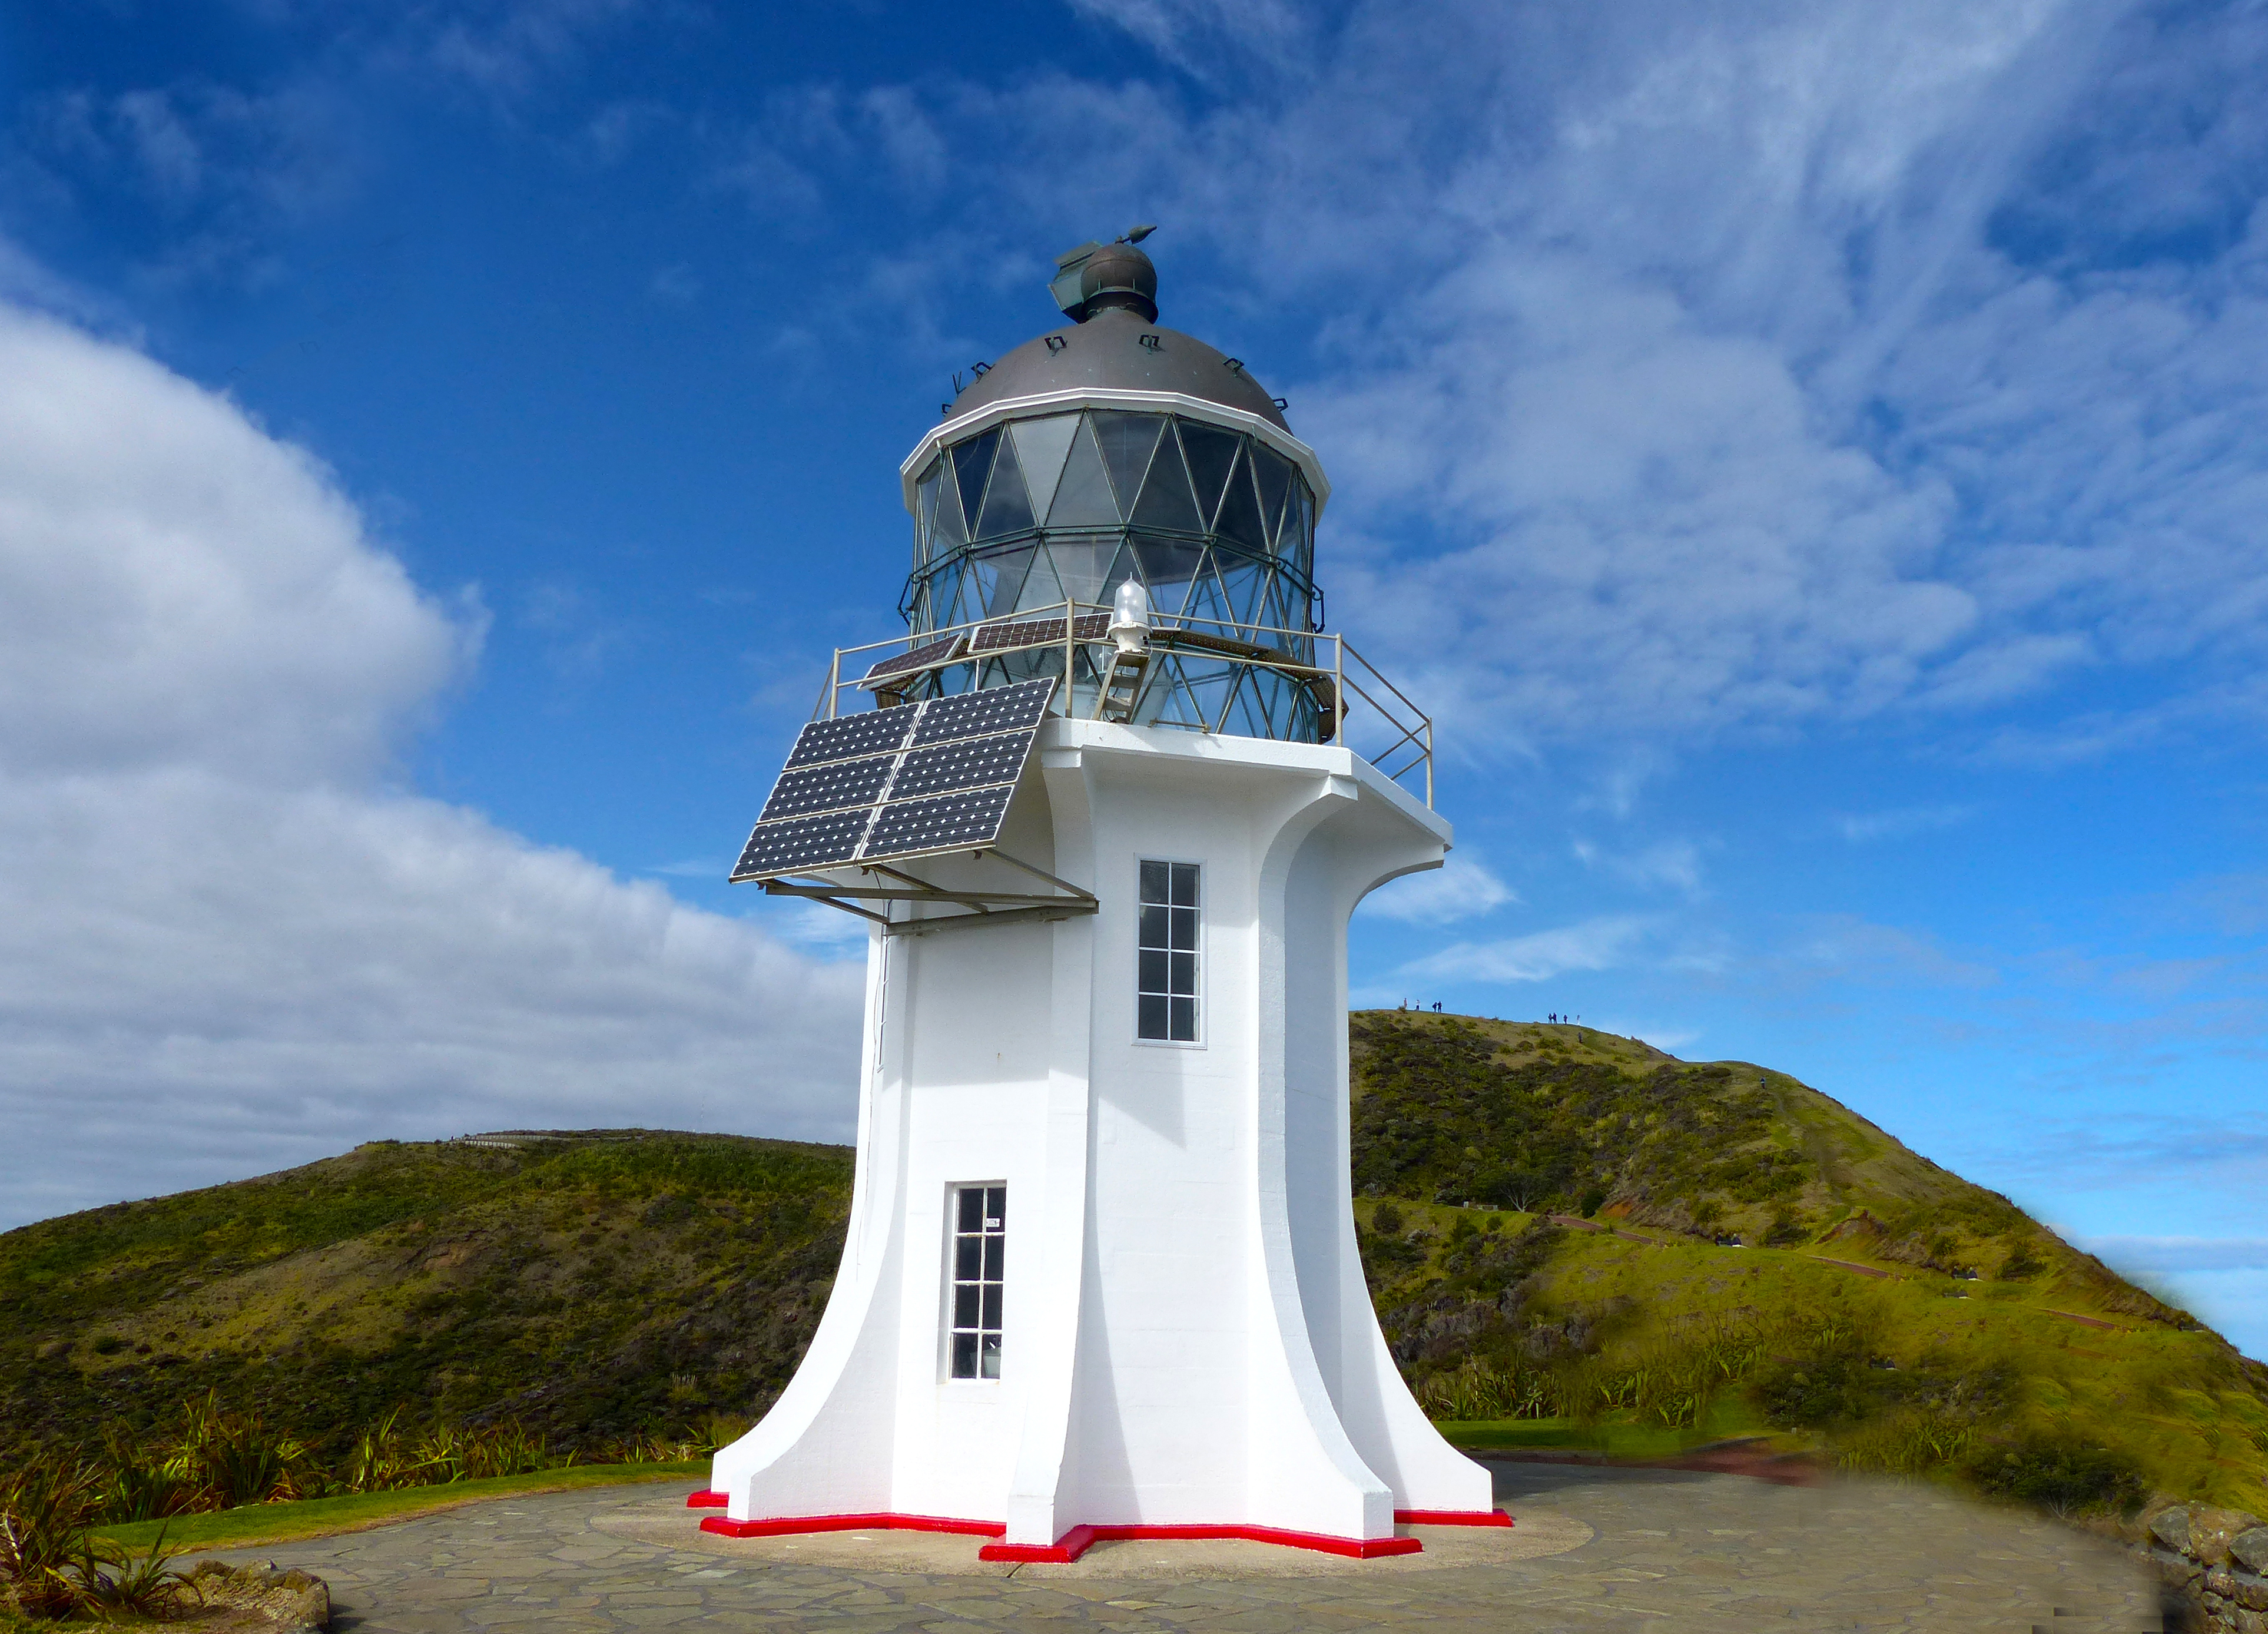 Cape Reigna Lighthouse. NZ, Architecture, Free photos, Geo-Tagged, Lighthouse, HQ Photo